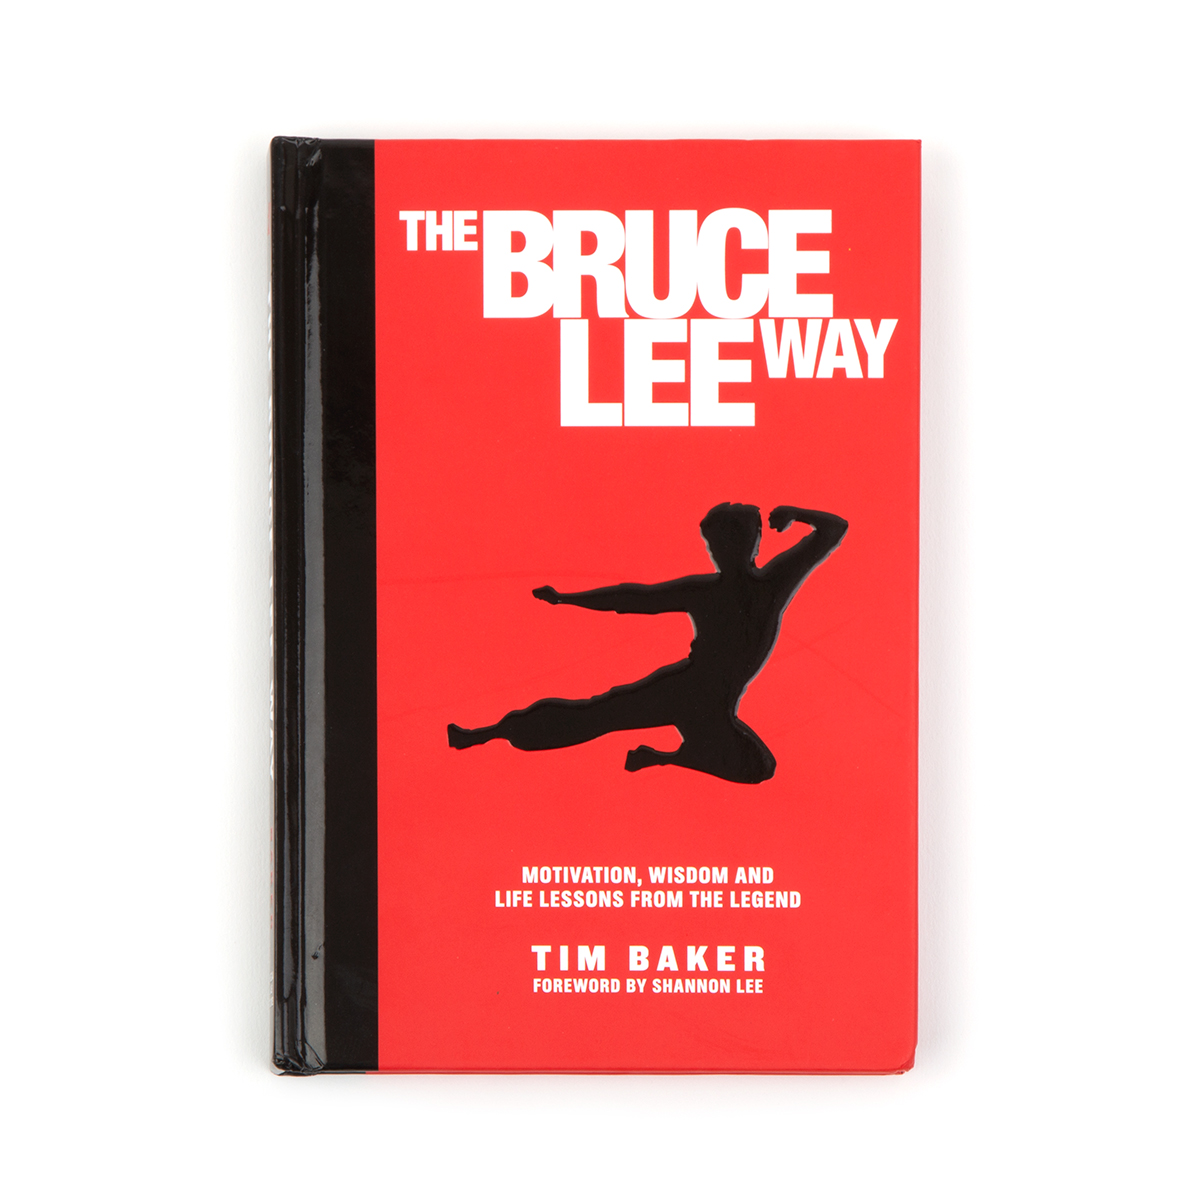 The Bruce Lee Way